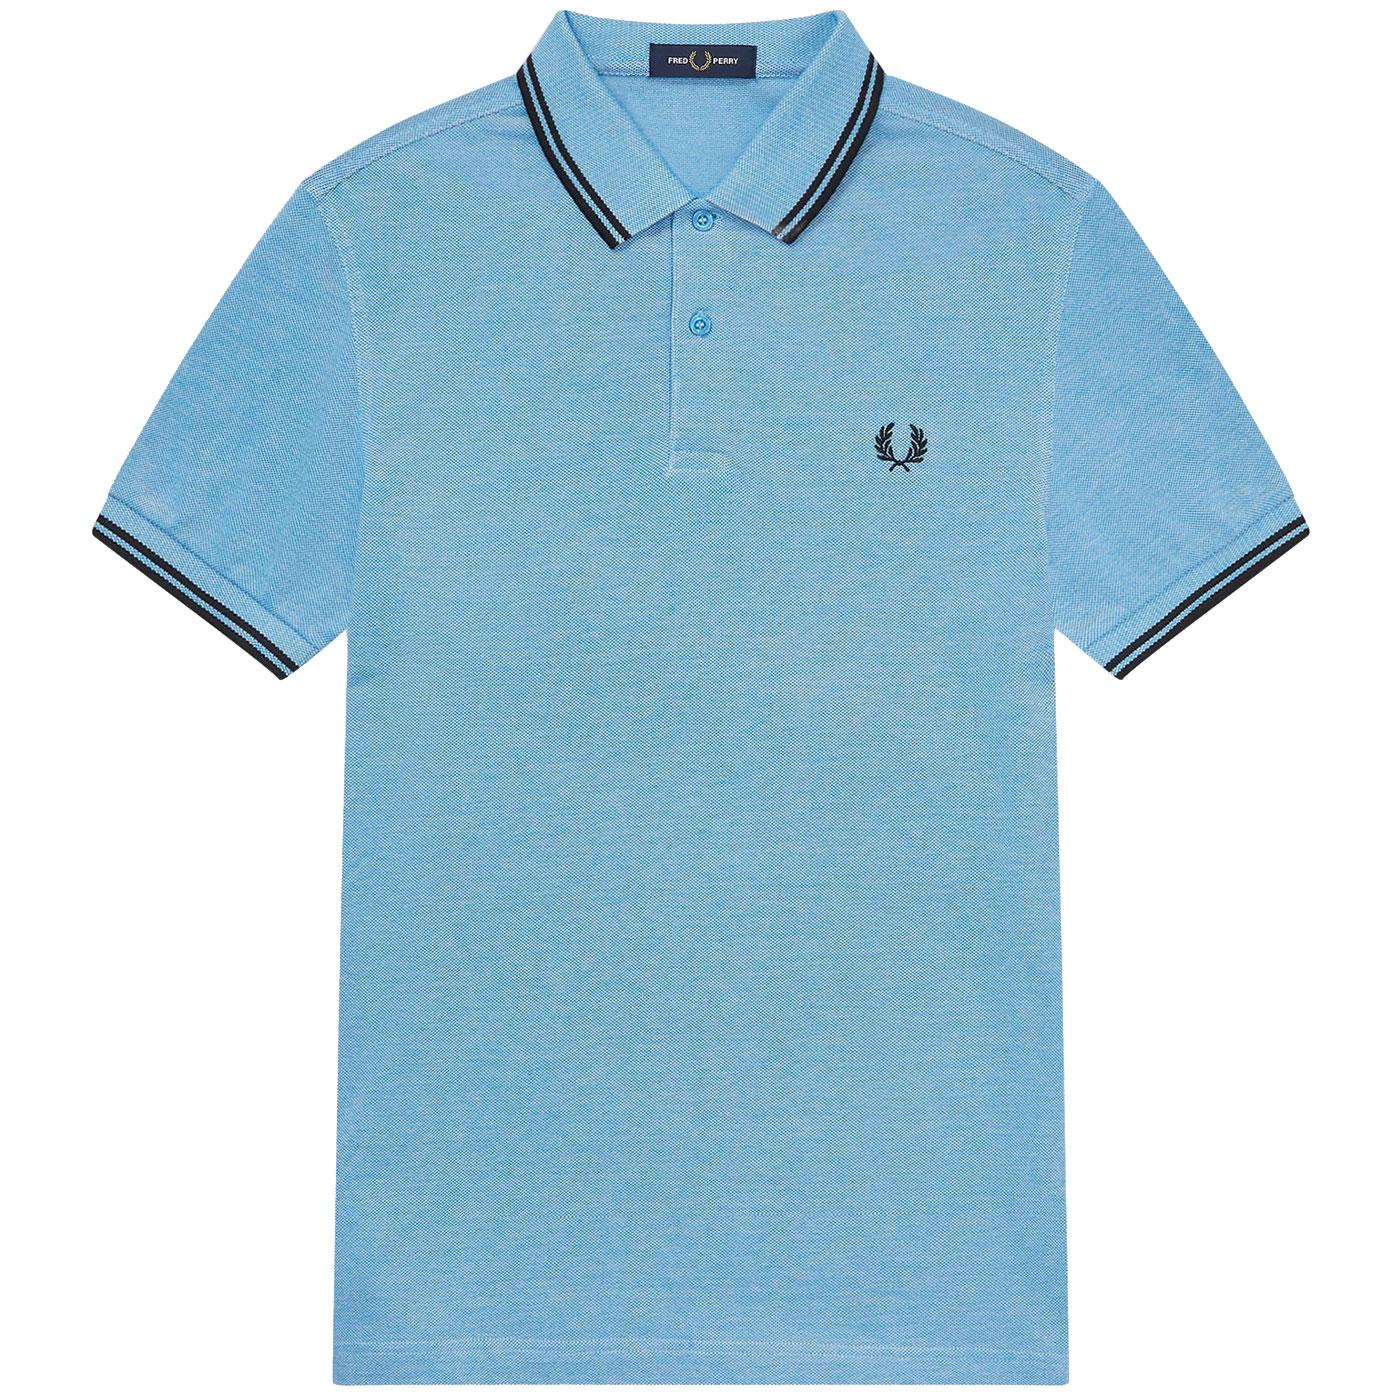 FRED PERRY M3600 Twin Tipped Oxford Polo Top WAVE